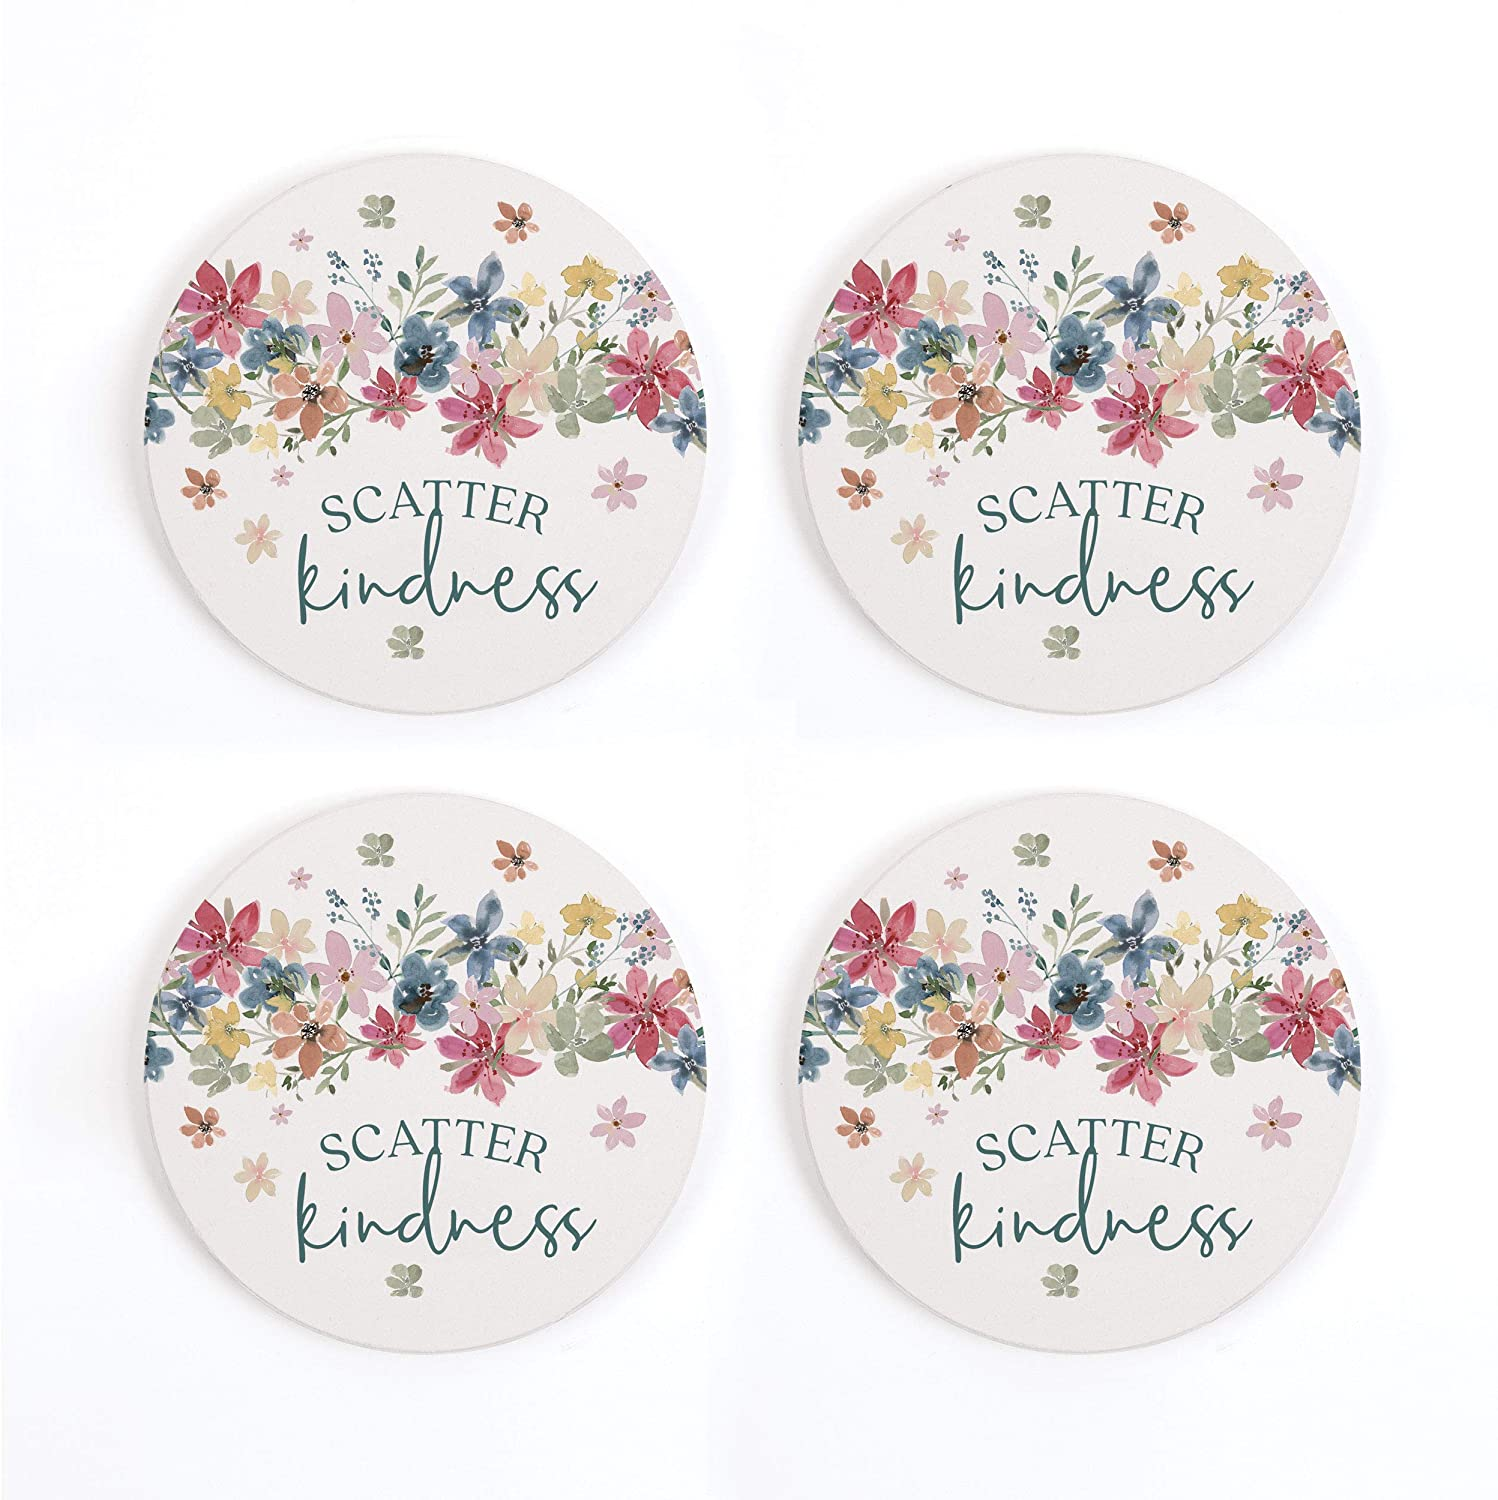 Scatter Kindness Floral Pink 4 x 4 Absorbent Ceramic Round Coasters Pack of 4